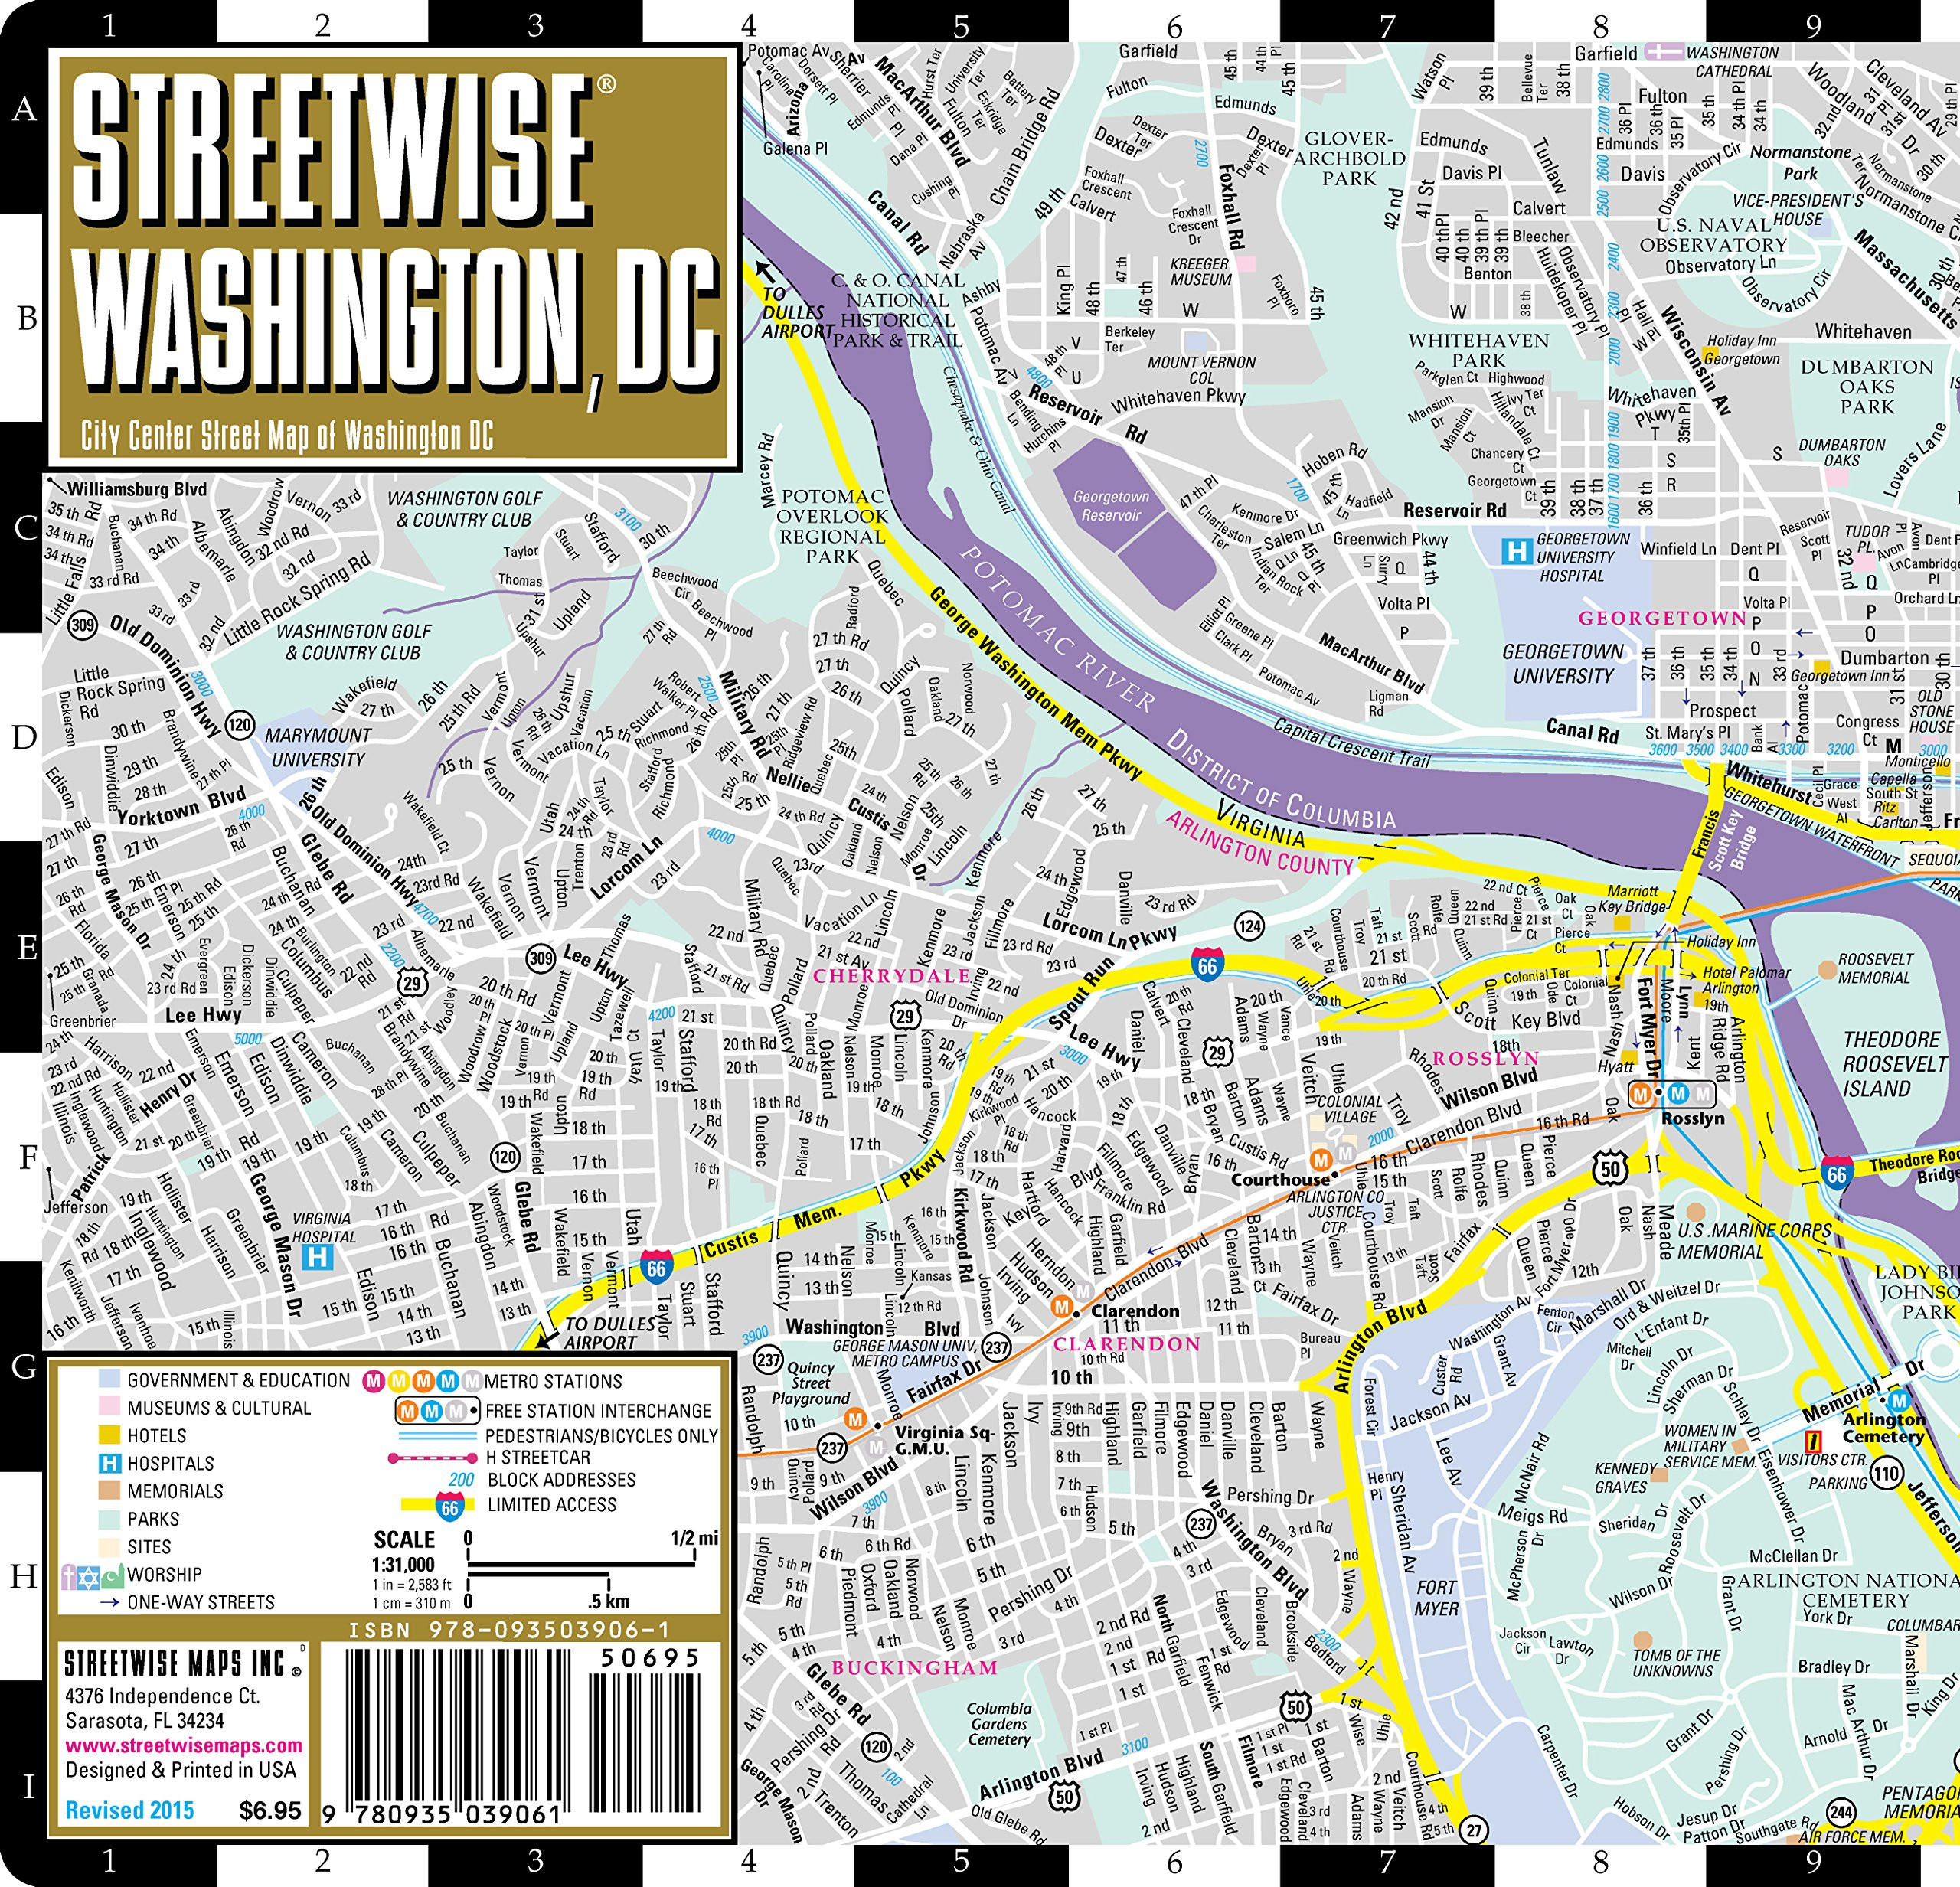 Printable Map Washington Dc Beautiful Streetwise Washington Dc Map Laminated City Center Street Map Of